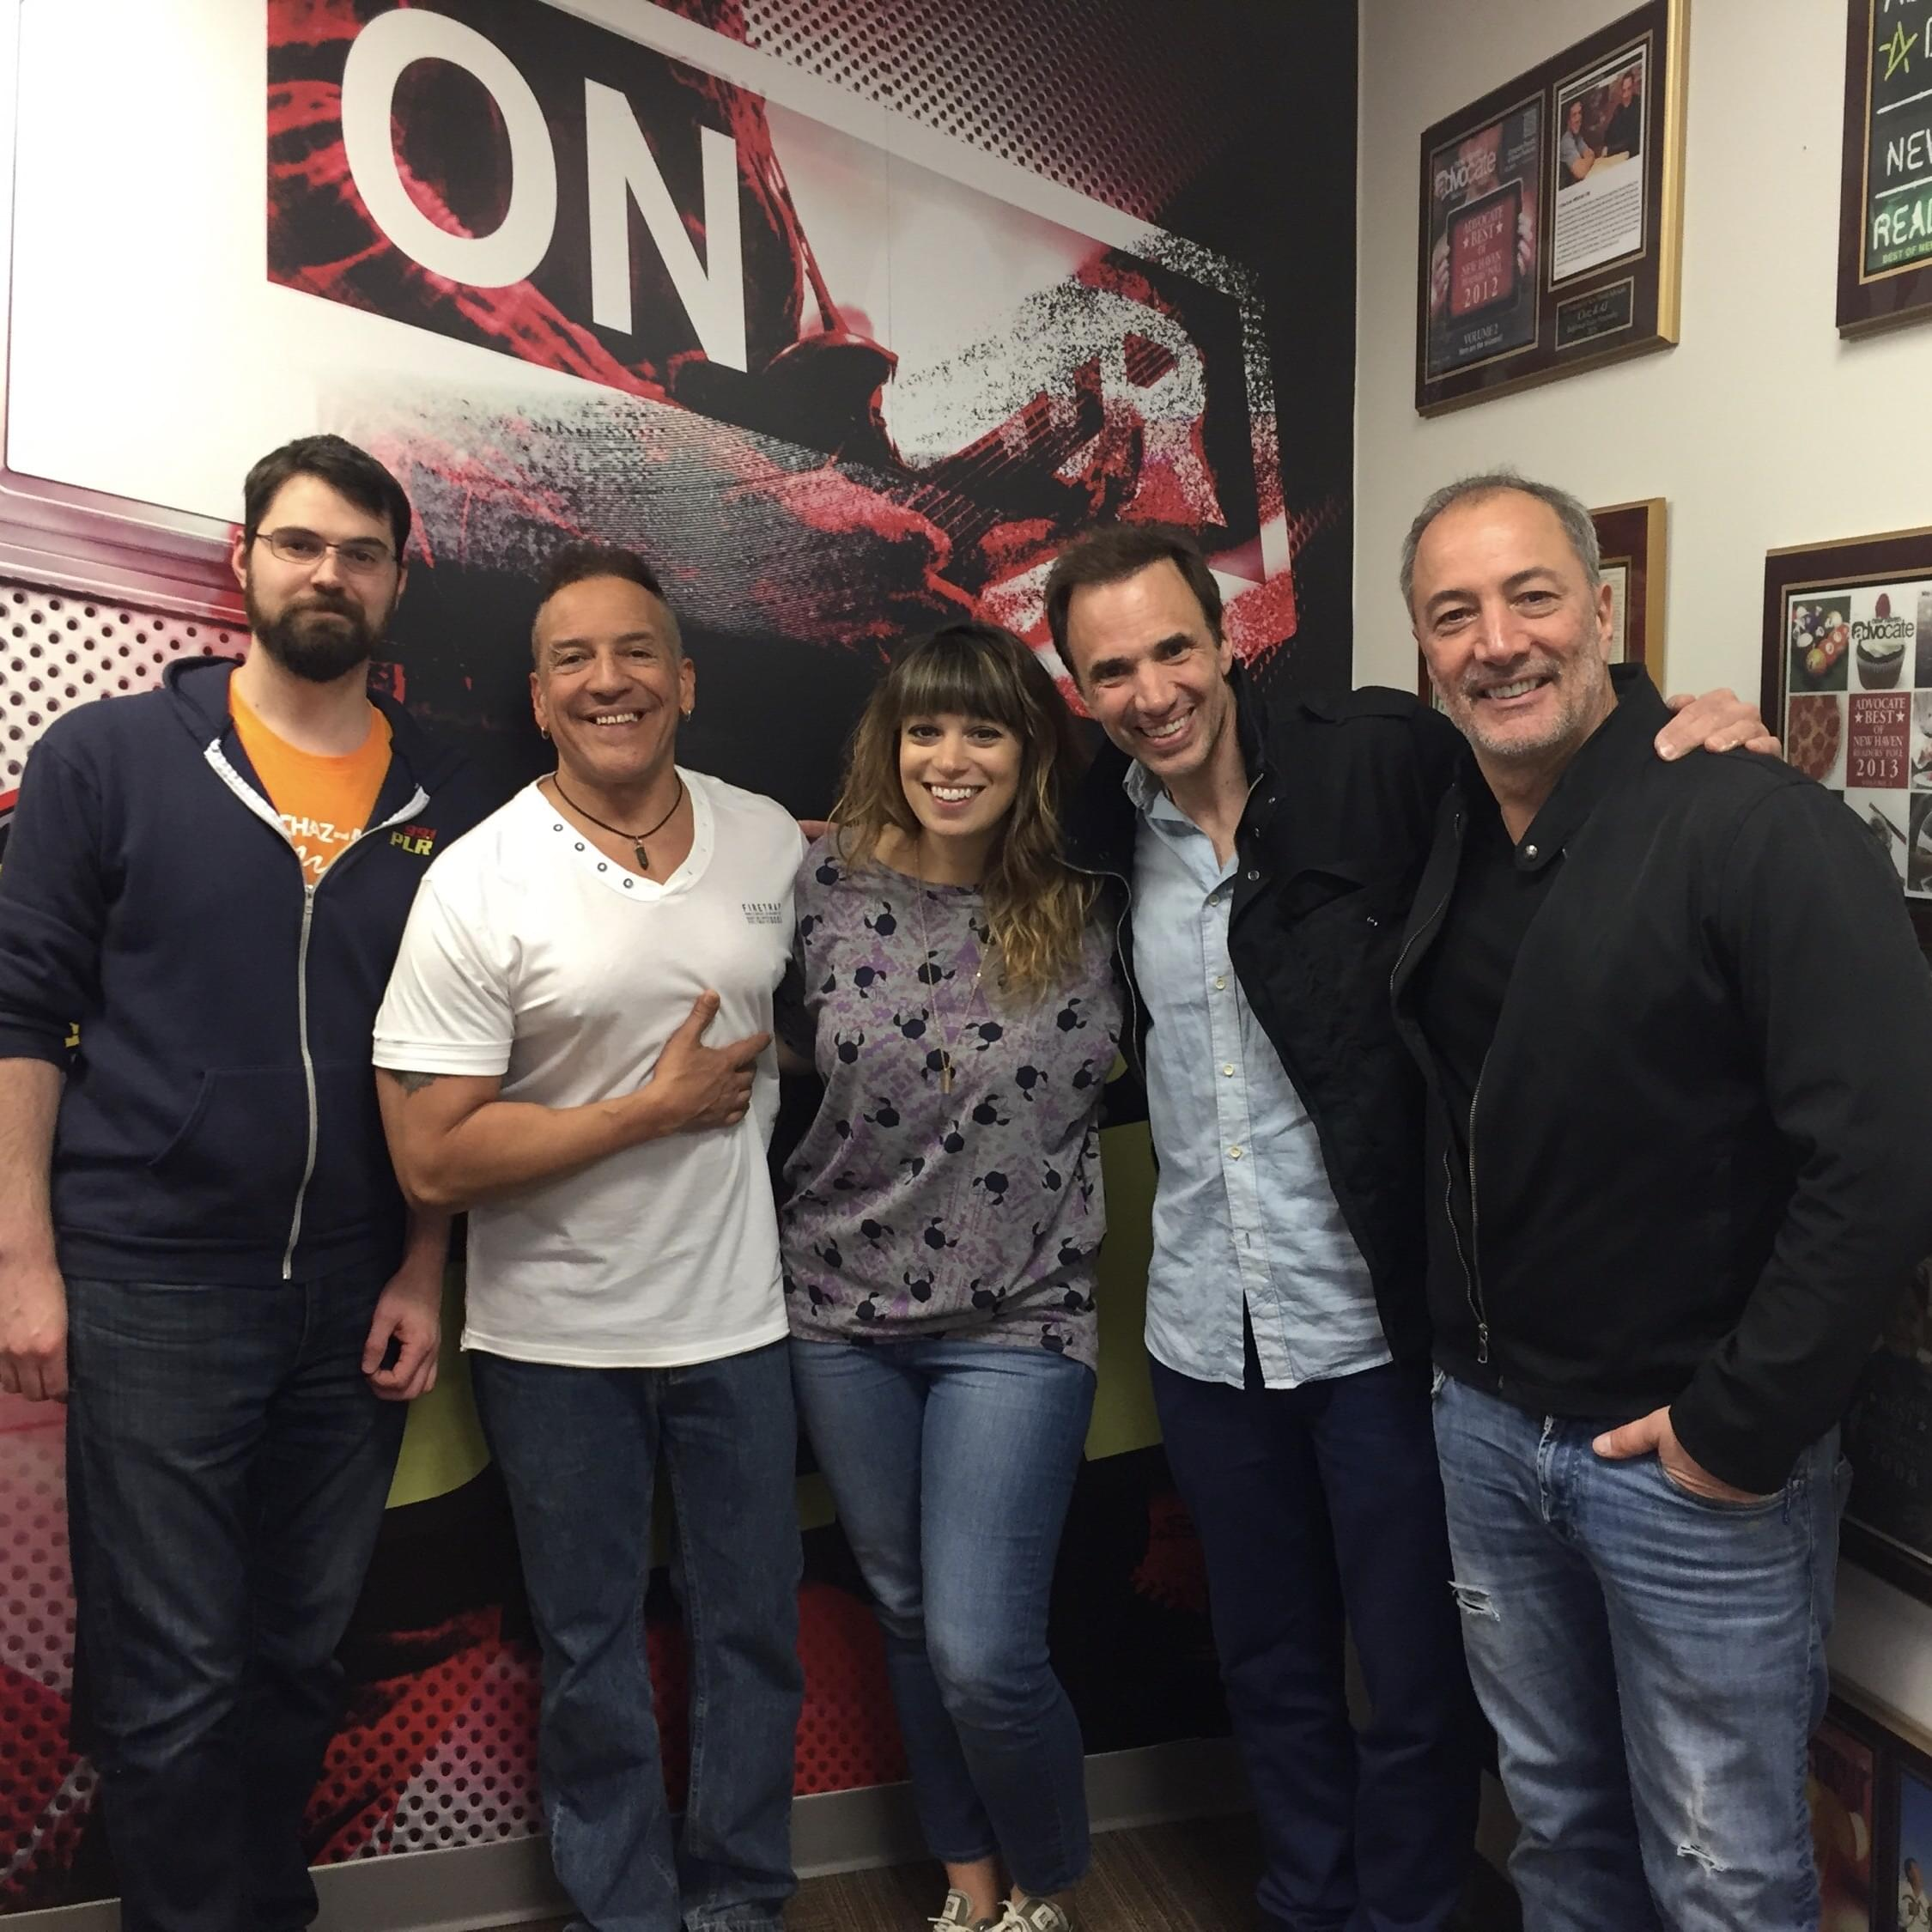 Friday, May 24: Comedian Paul Mecurio In Studio And The Gross Things Your Significant Other Does